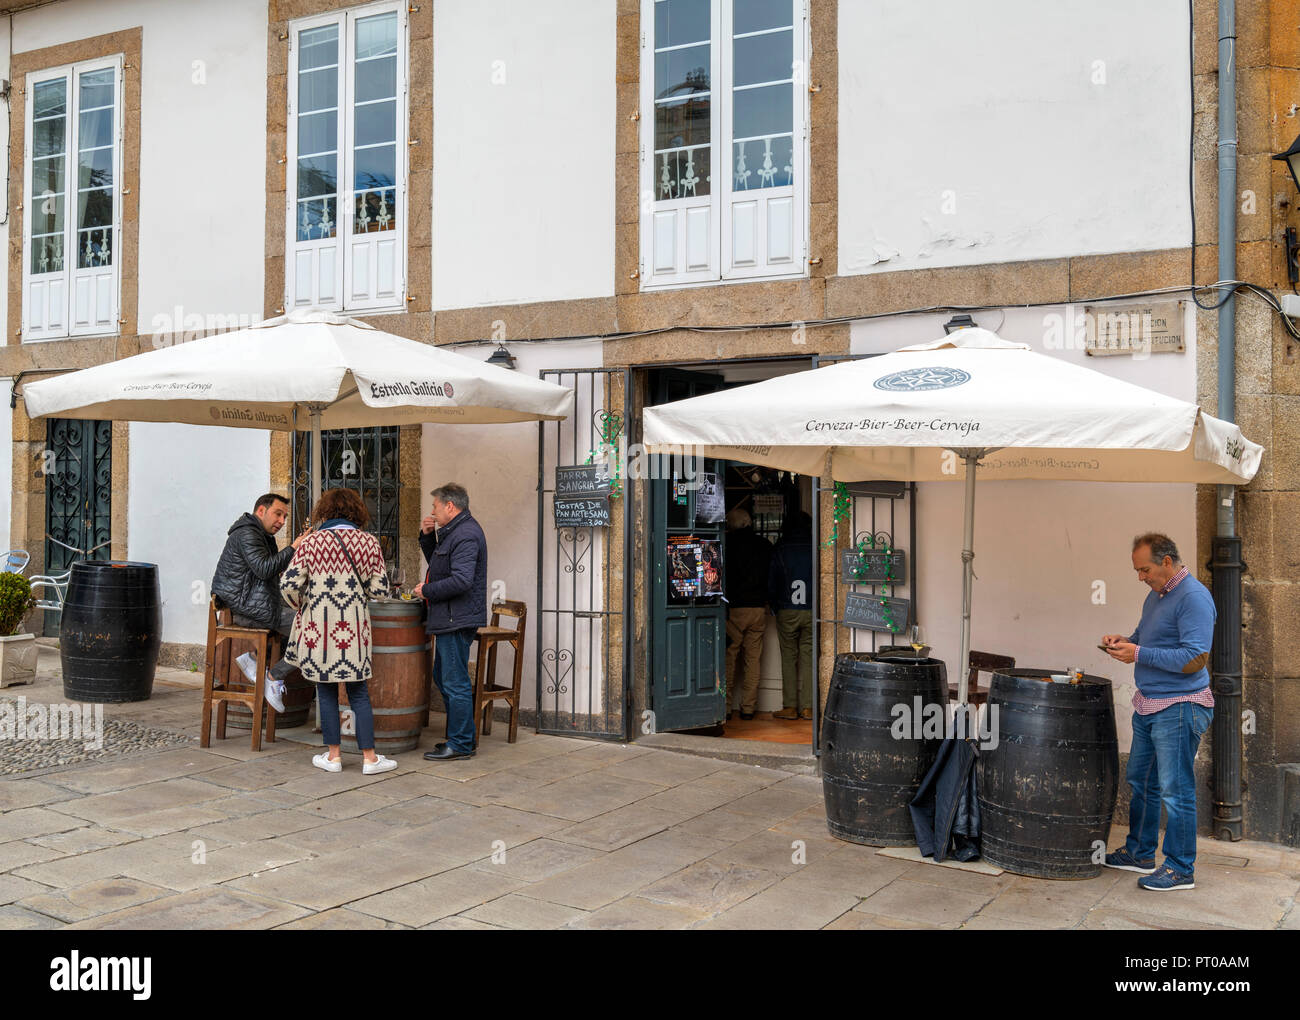 Typical local bar in Plaza de la Constitucion (Praza da Constitucion), A Coruna, Galicia, Spain - Stock Image